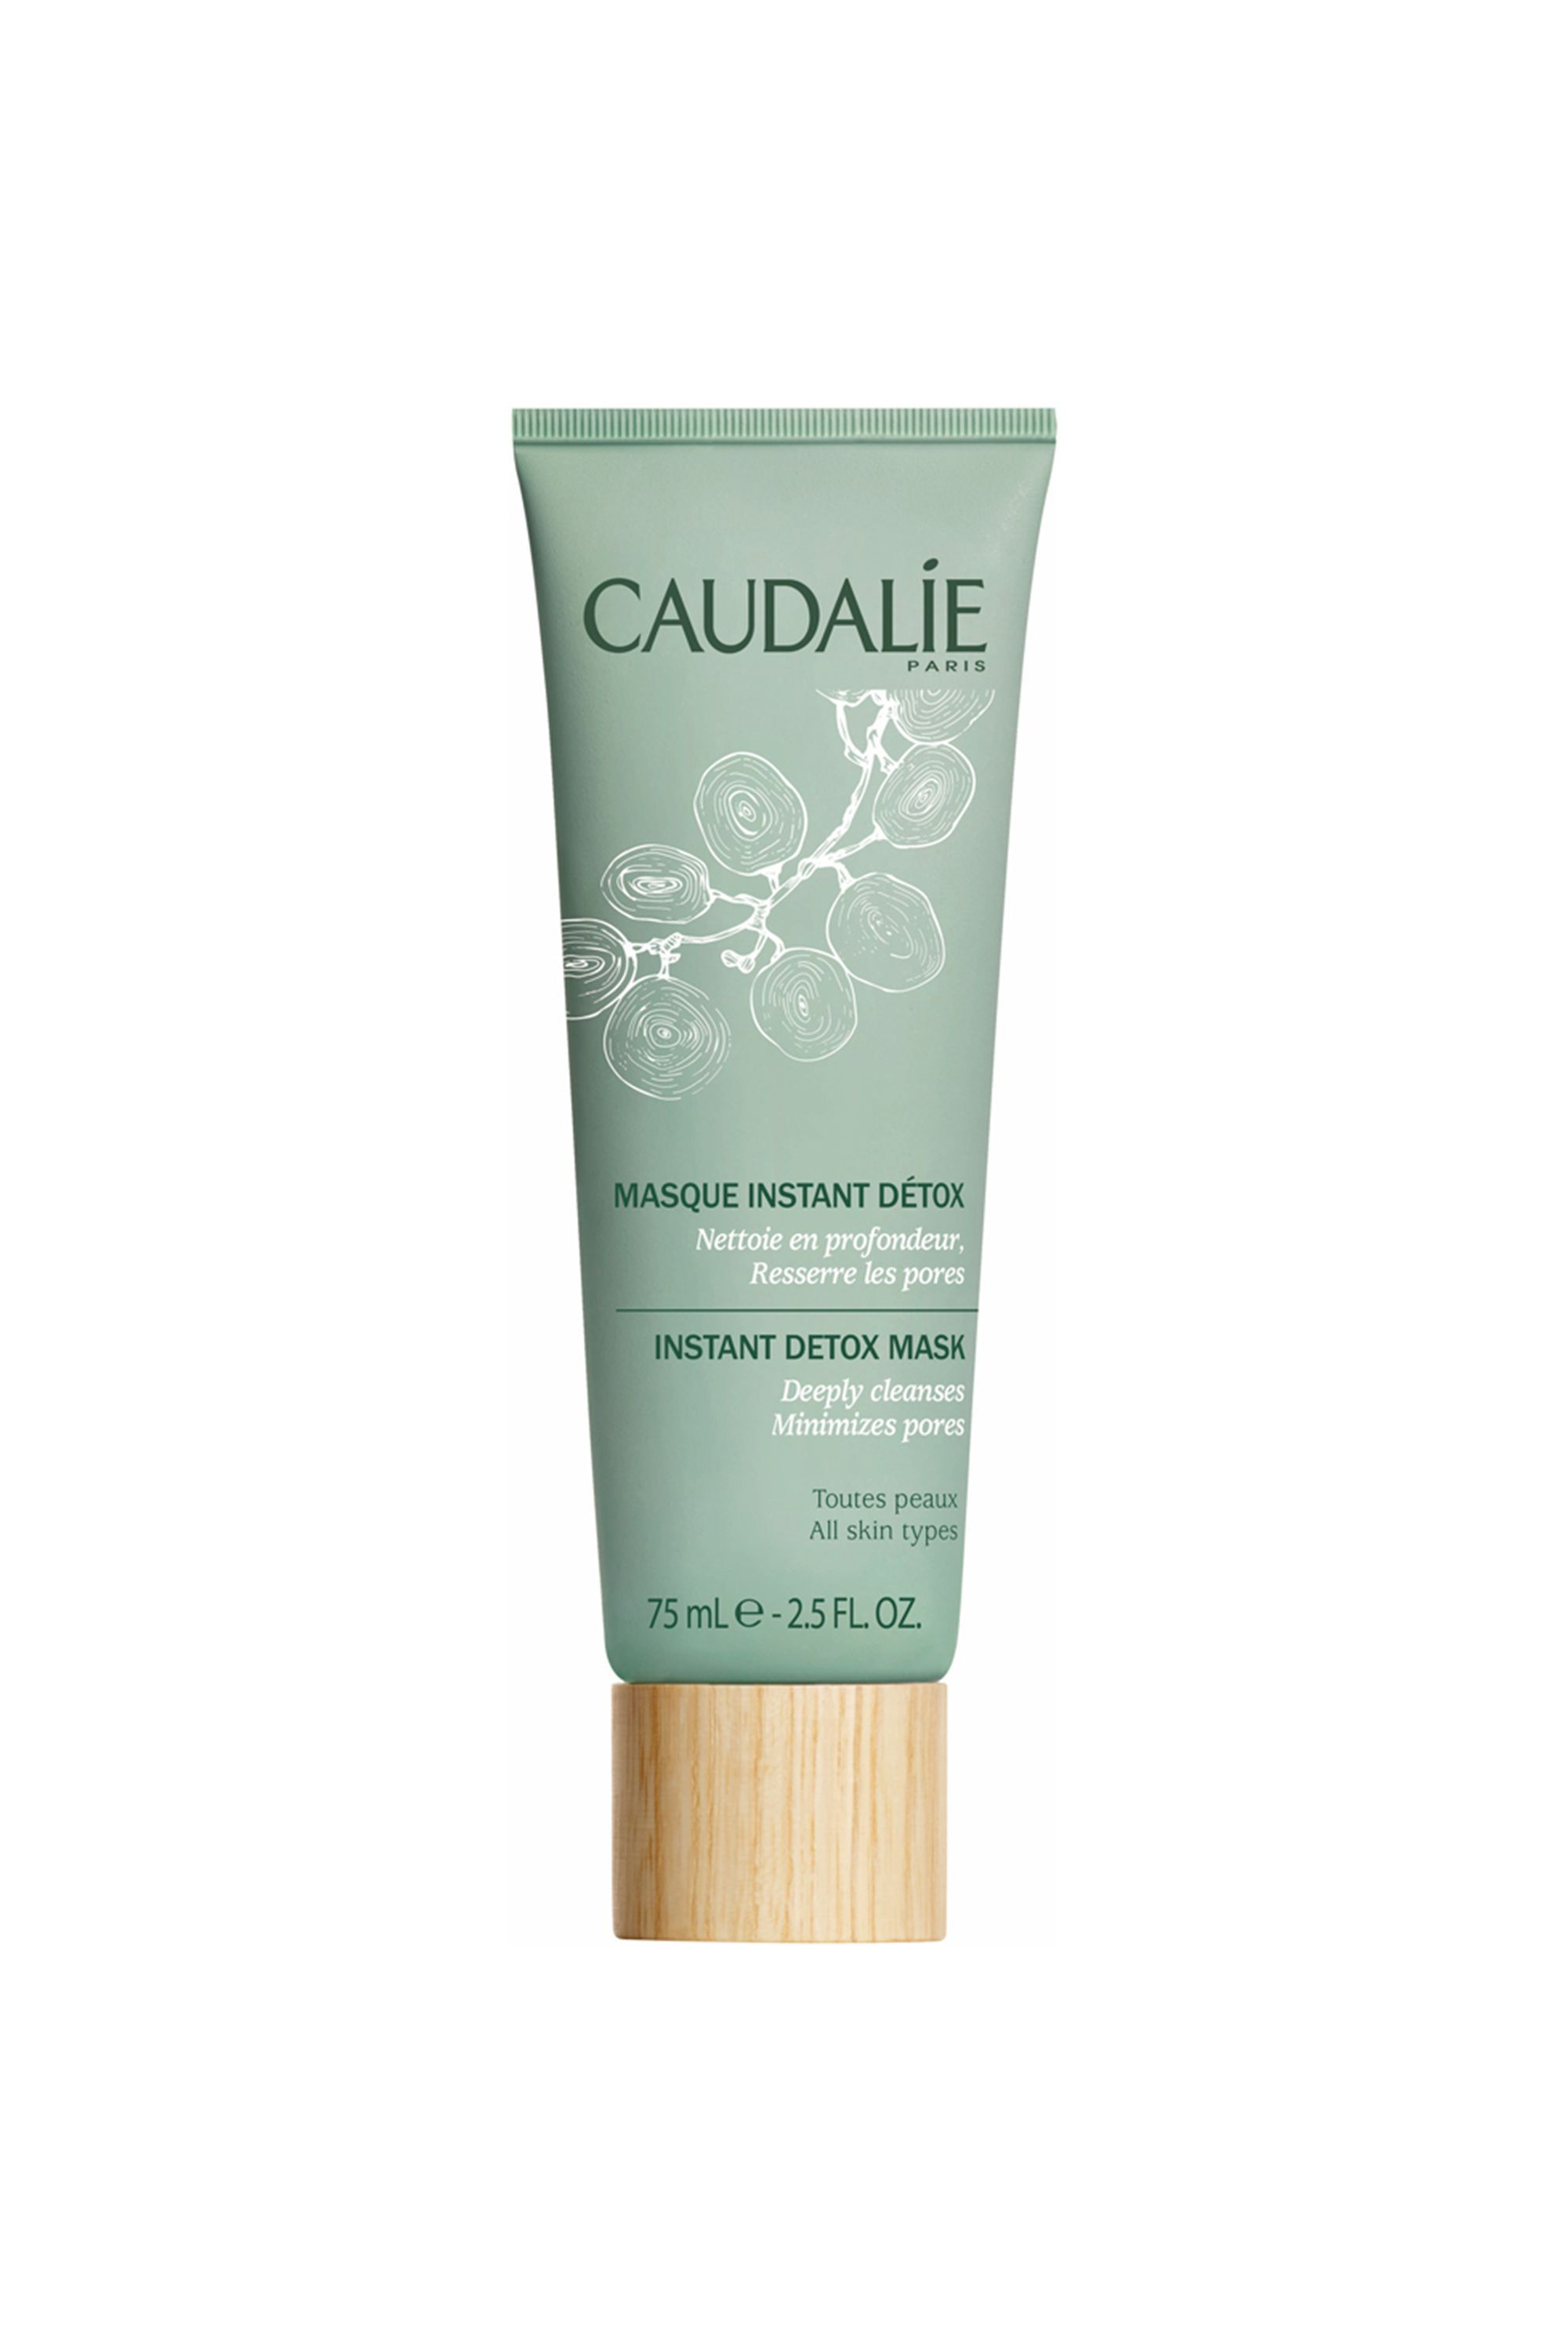 Instant Detox Mask Caudalie amazon.com $26.12 SHOP NOW Caudalie's Instant Detox Mask sucks out all the toxins, congestion, and excess oil in your skin to reveal a healthier and more even skin tone. Black coffee eliminates blackhead-causing dirt, while papaya enzymes naturally brighten skin to reveal your best face yet.